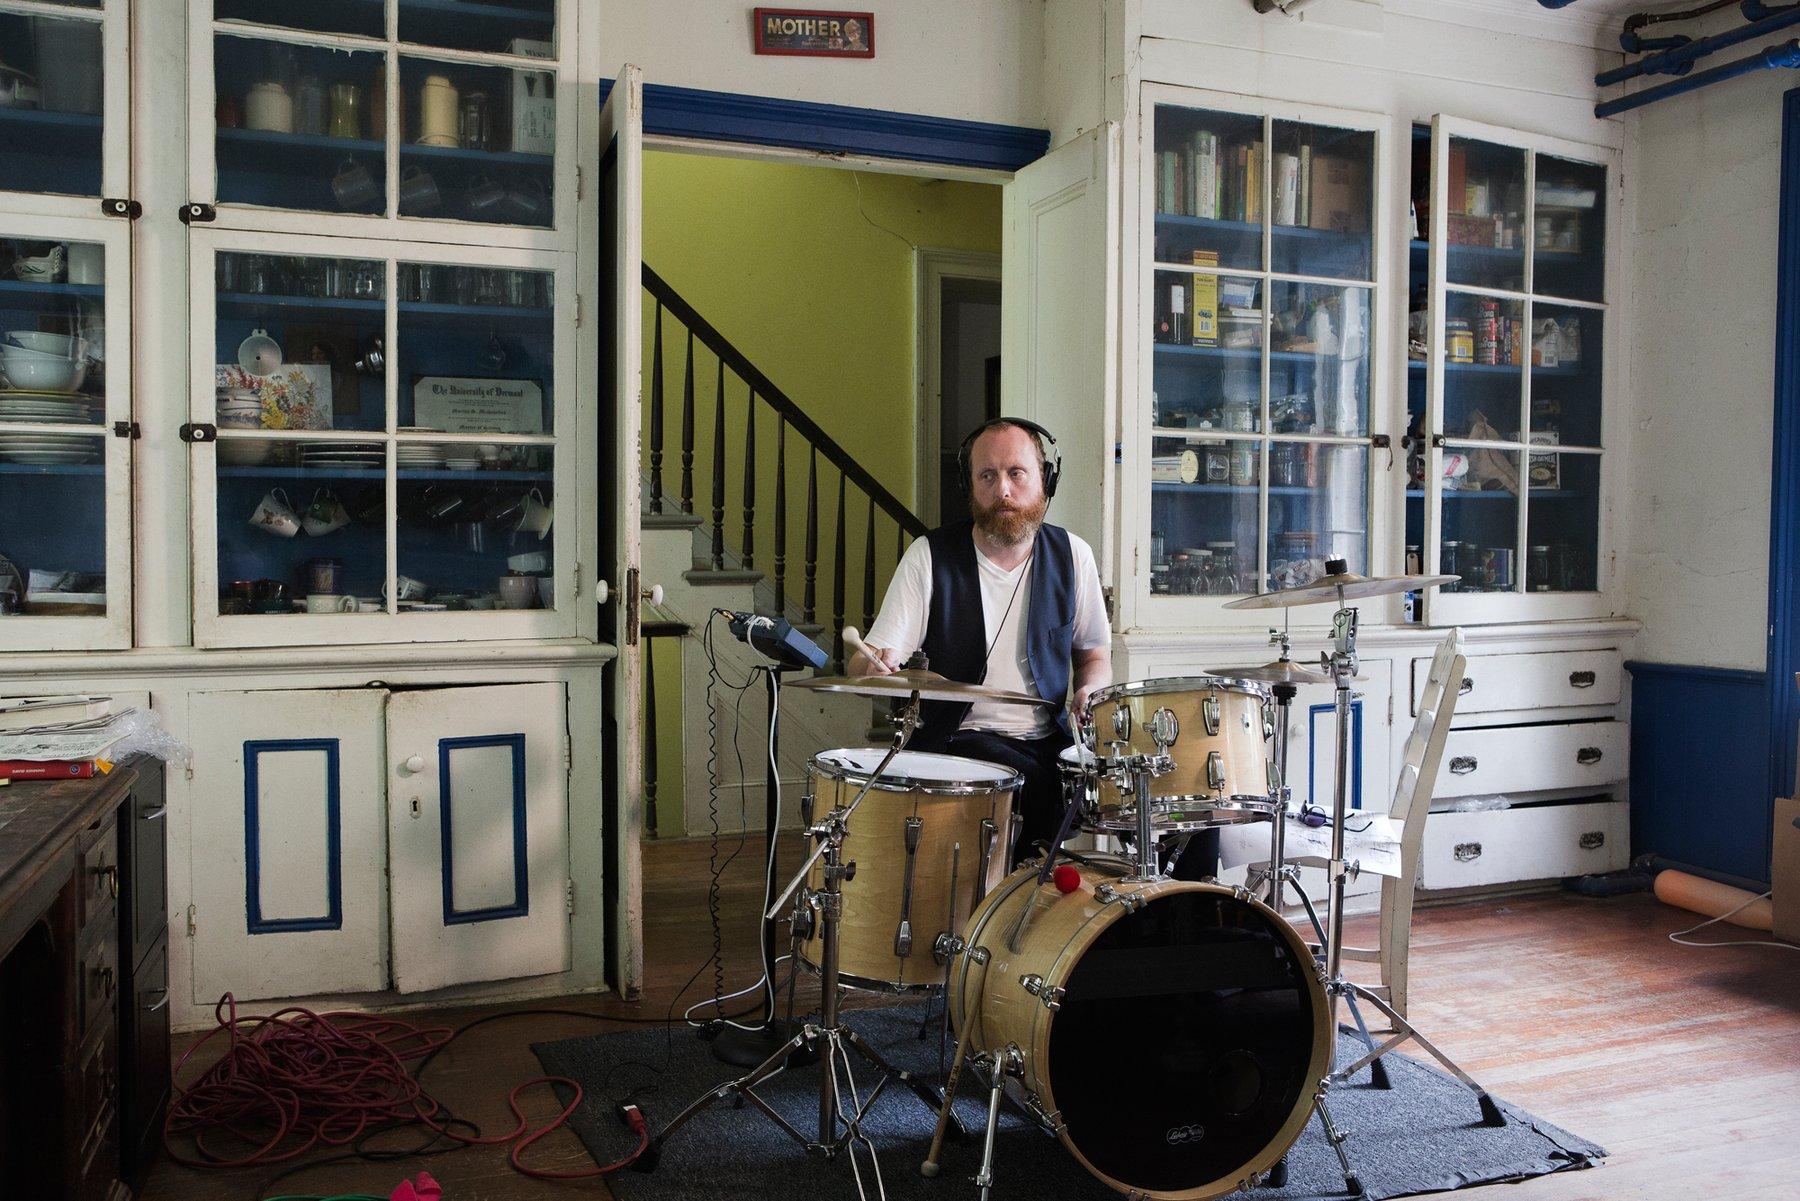 A bearded Caucasian man wearing a blue vest plays a drum set in a domestic living room, Kjartansson